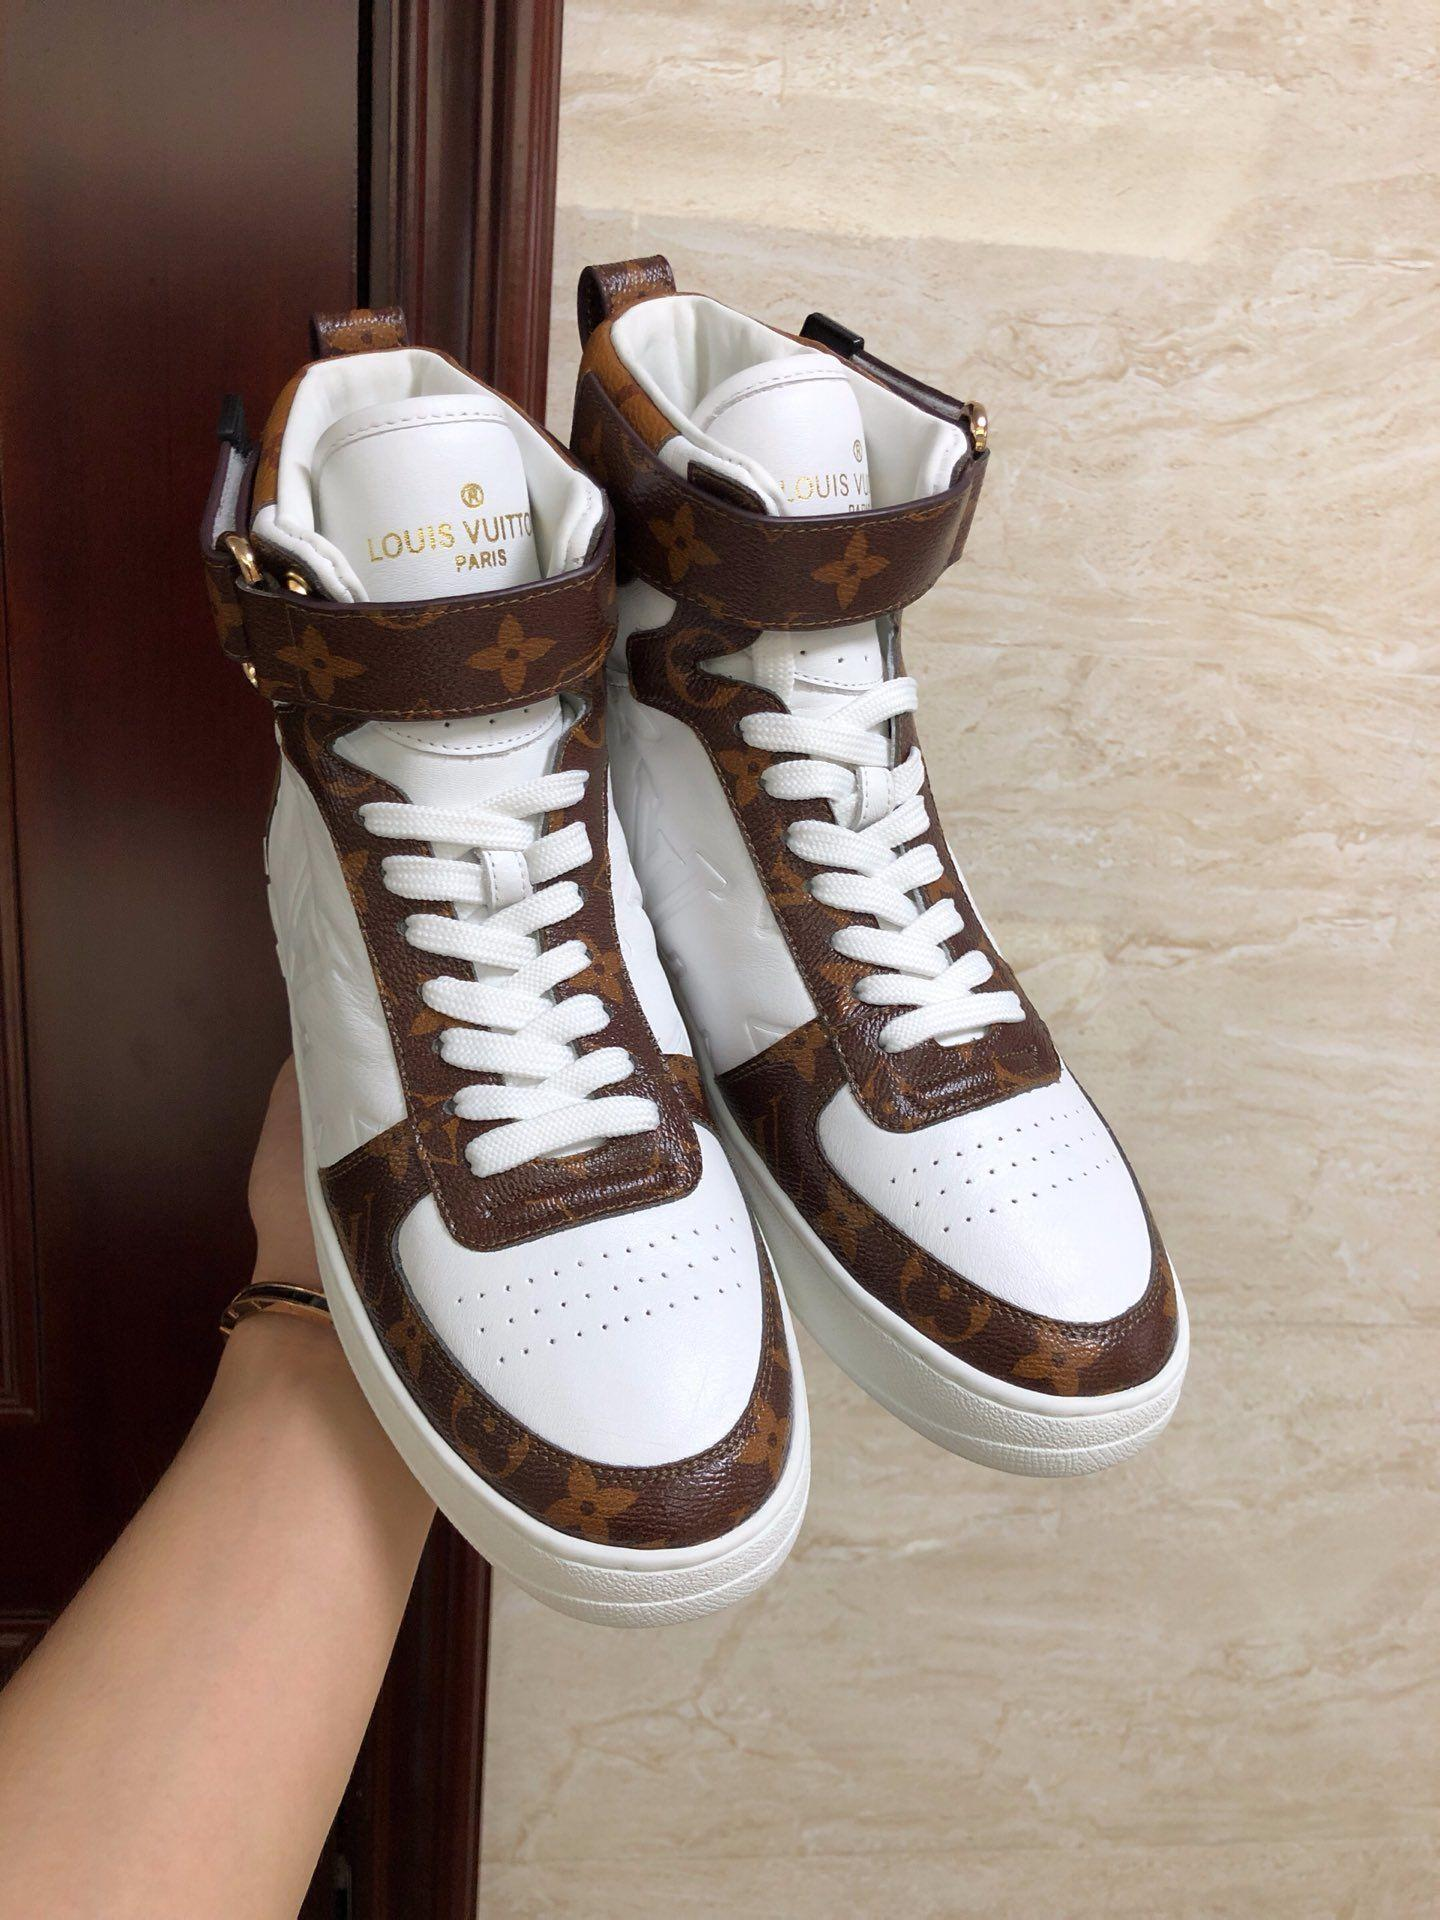 boombox sneaker boot    women sneaker 1A5MWJ Embossed lamb leather  White  5